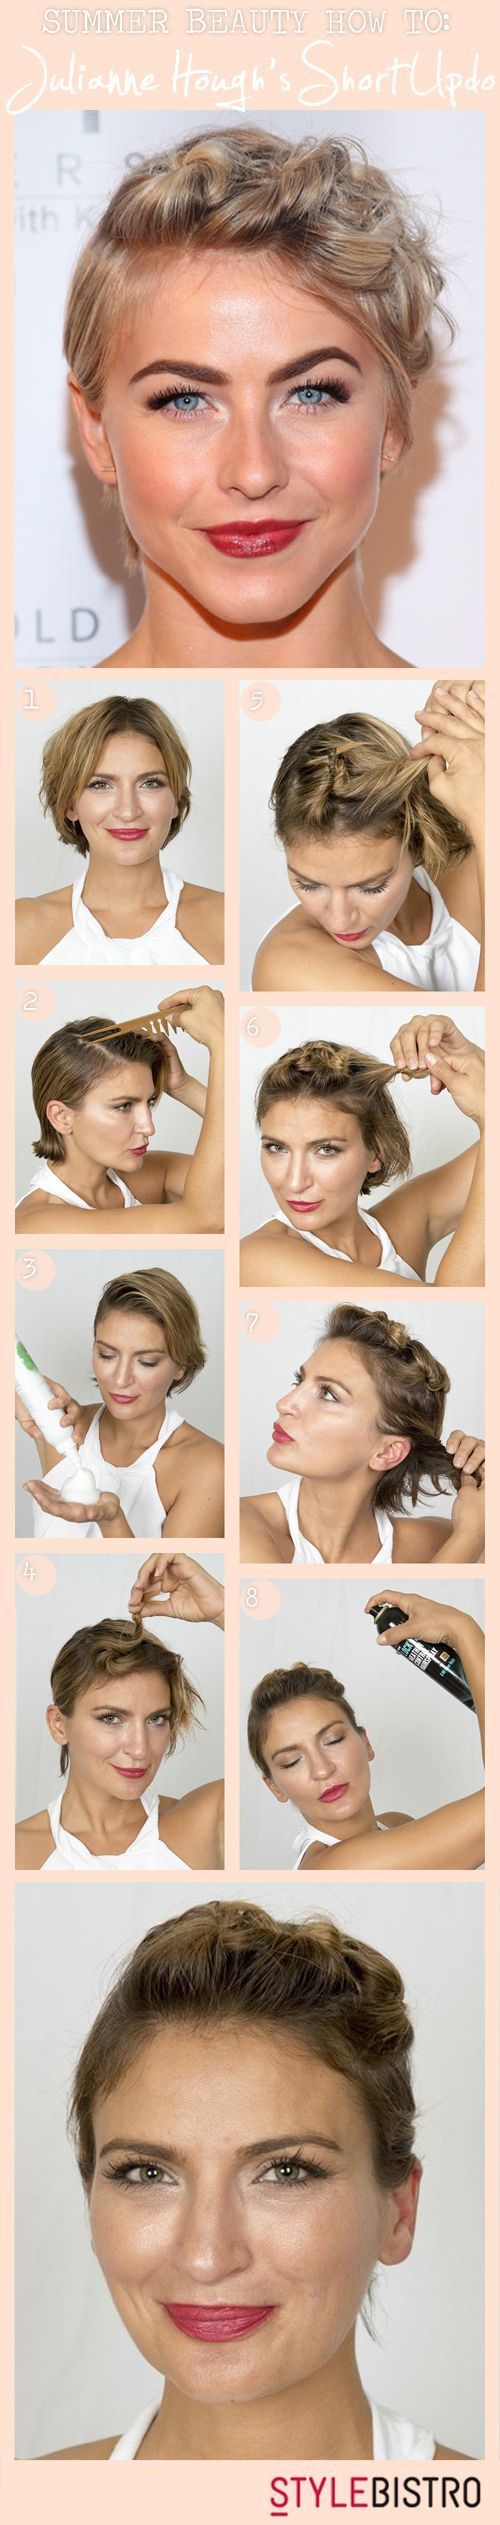 Get the perfect Julian Hough hairstyle with this hair tutorial